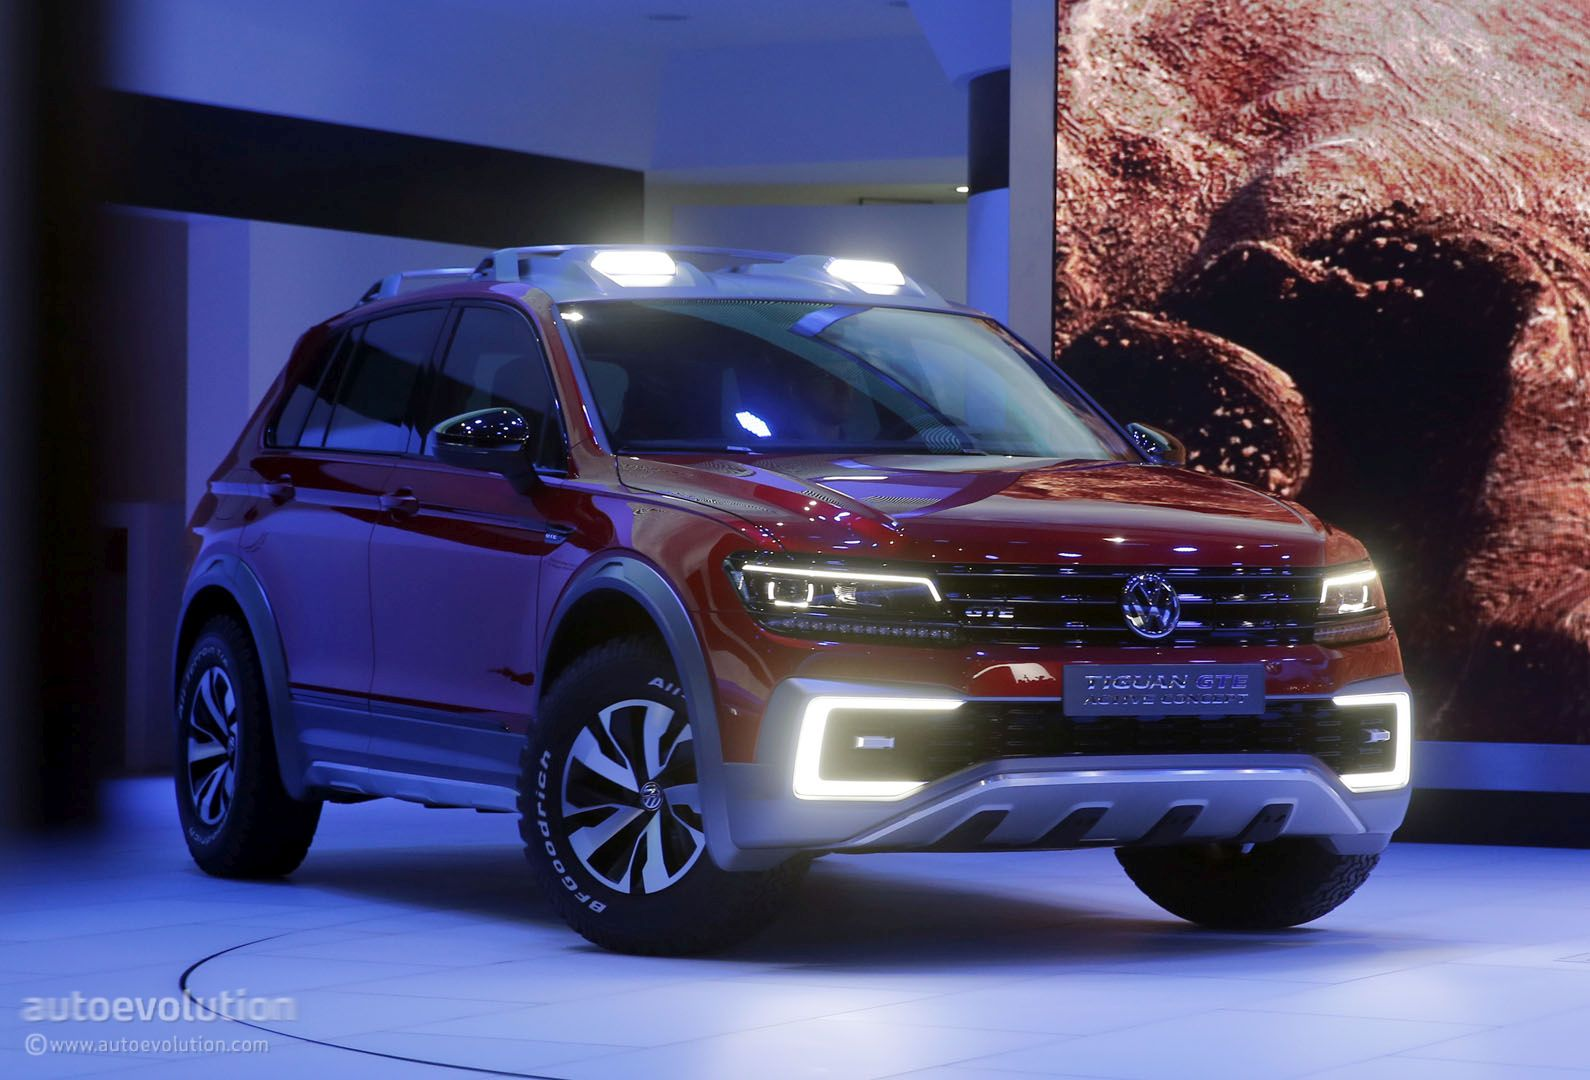 New Nissan Truck >> Volkswagen Tiguan GTE Active Concept Is a RWD-Based Sporty ...